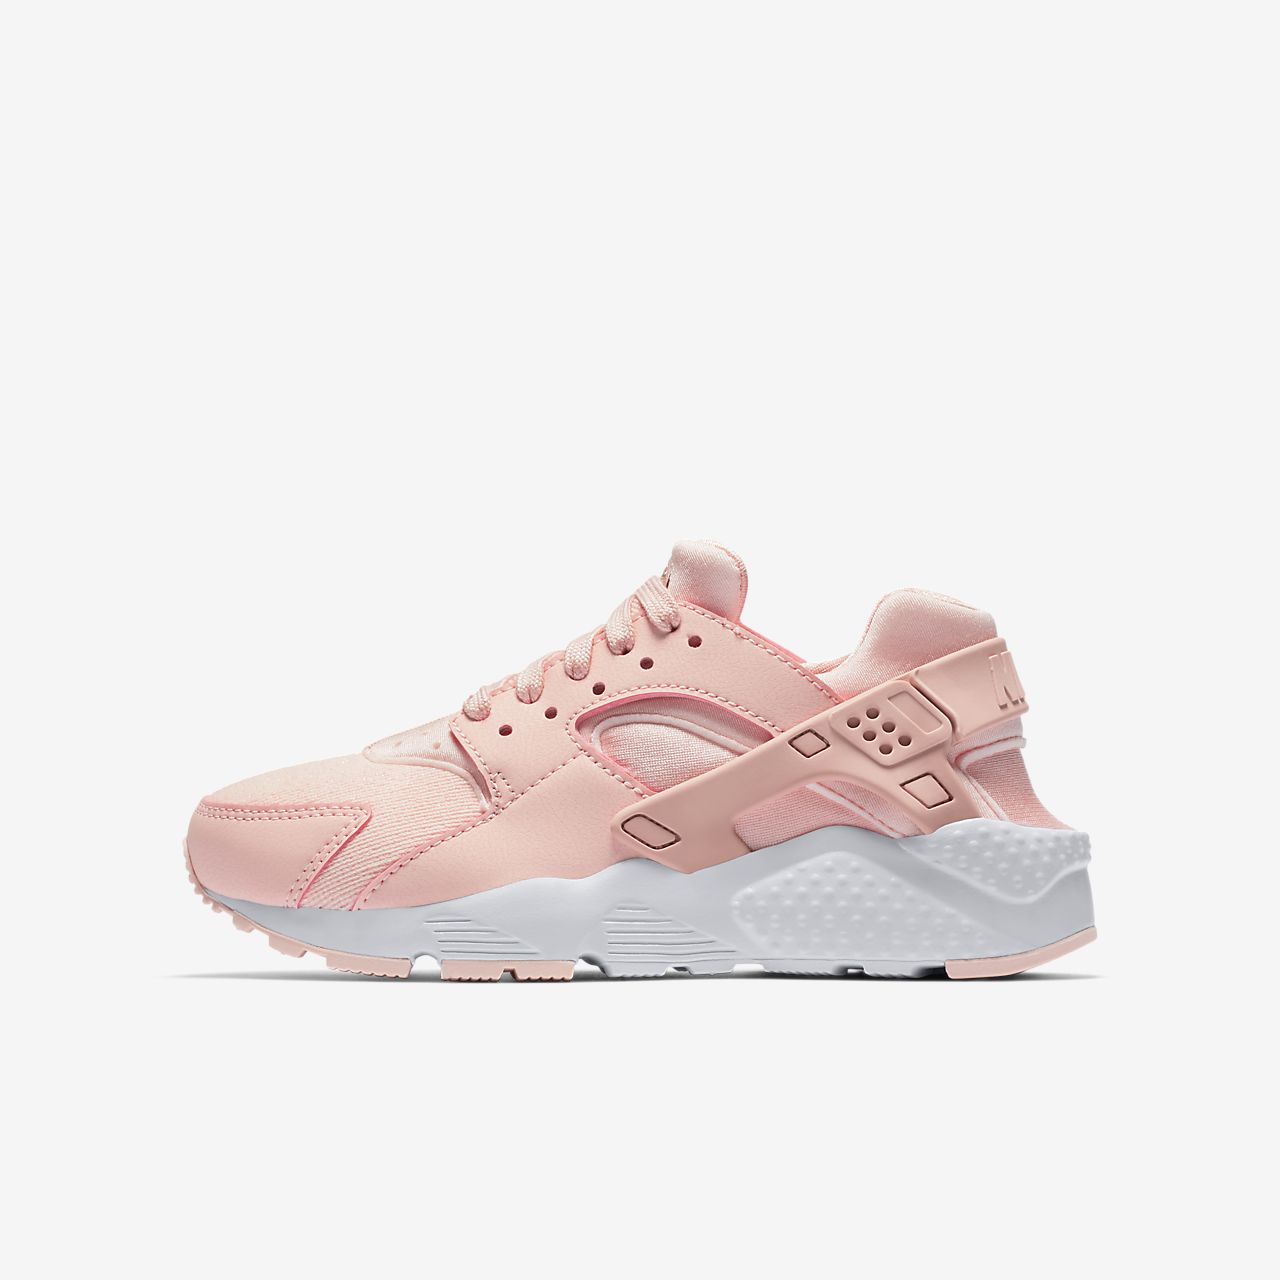 1f0868e035d ... particle rose 704952 603 48f5c 3423e purchase nike huarache toddler  sizing a452b 12362 best price nike huarache se big kids shoe 99a79 252fd ...